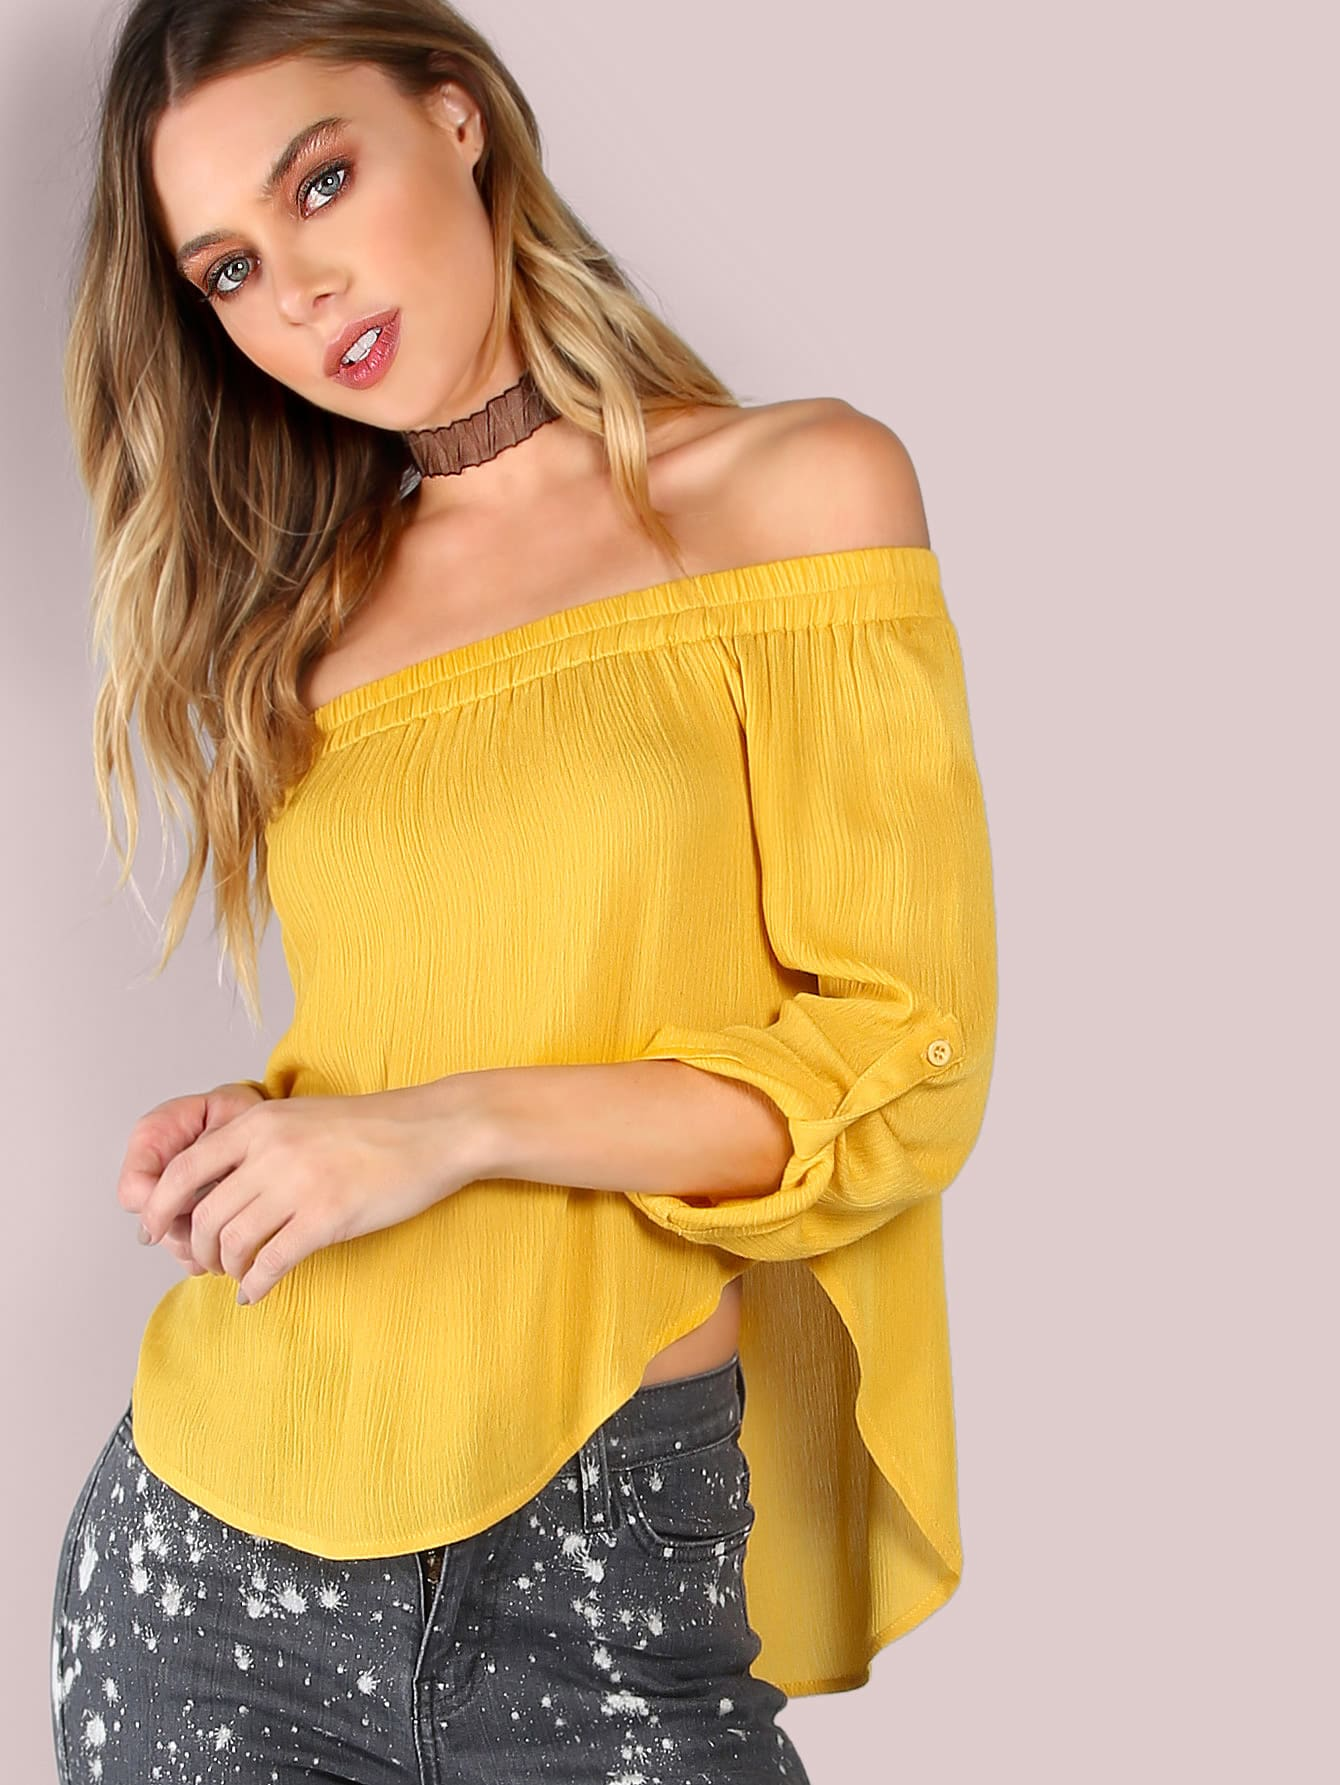 Yellow Off The Shoulder Tie Sleeve TopYellow Off The Shoulder Tie Sleeve Top<br><br>color: Yellow<br>size: L,M,S,XS